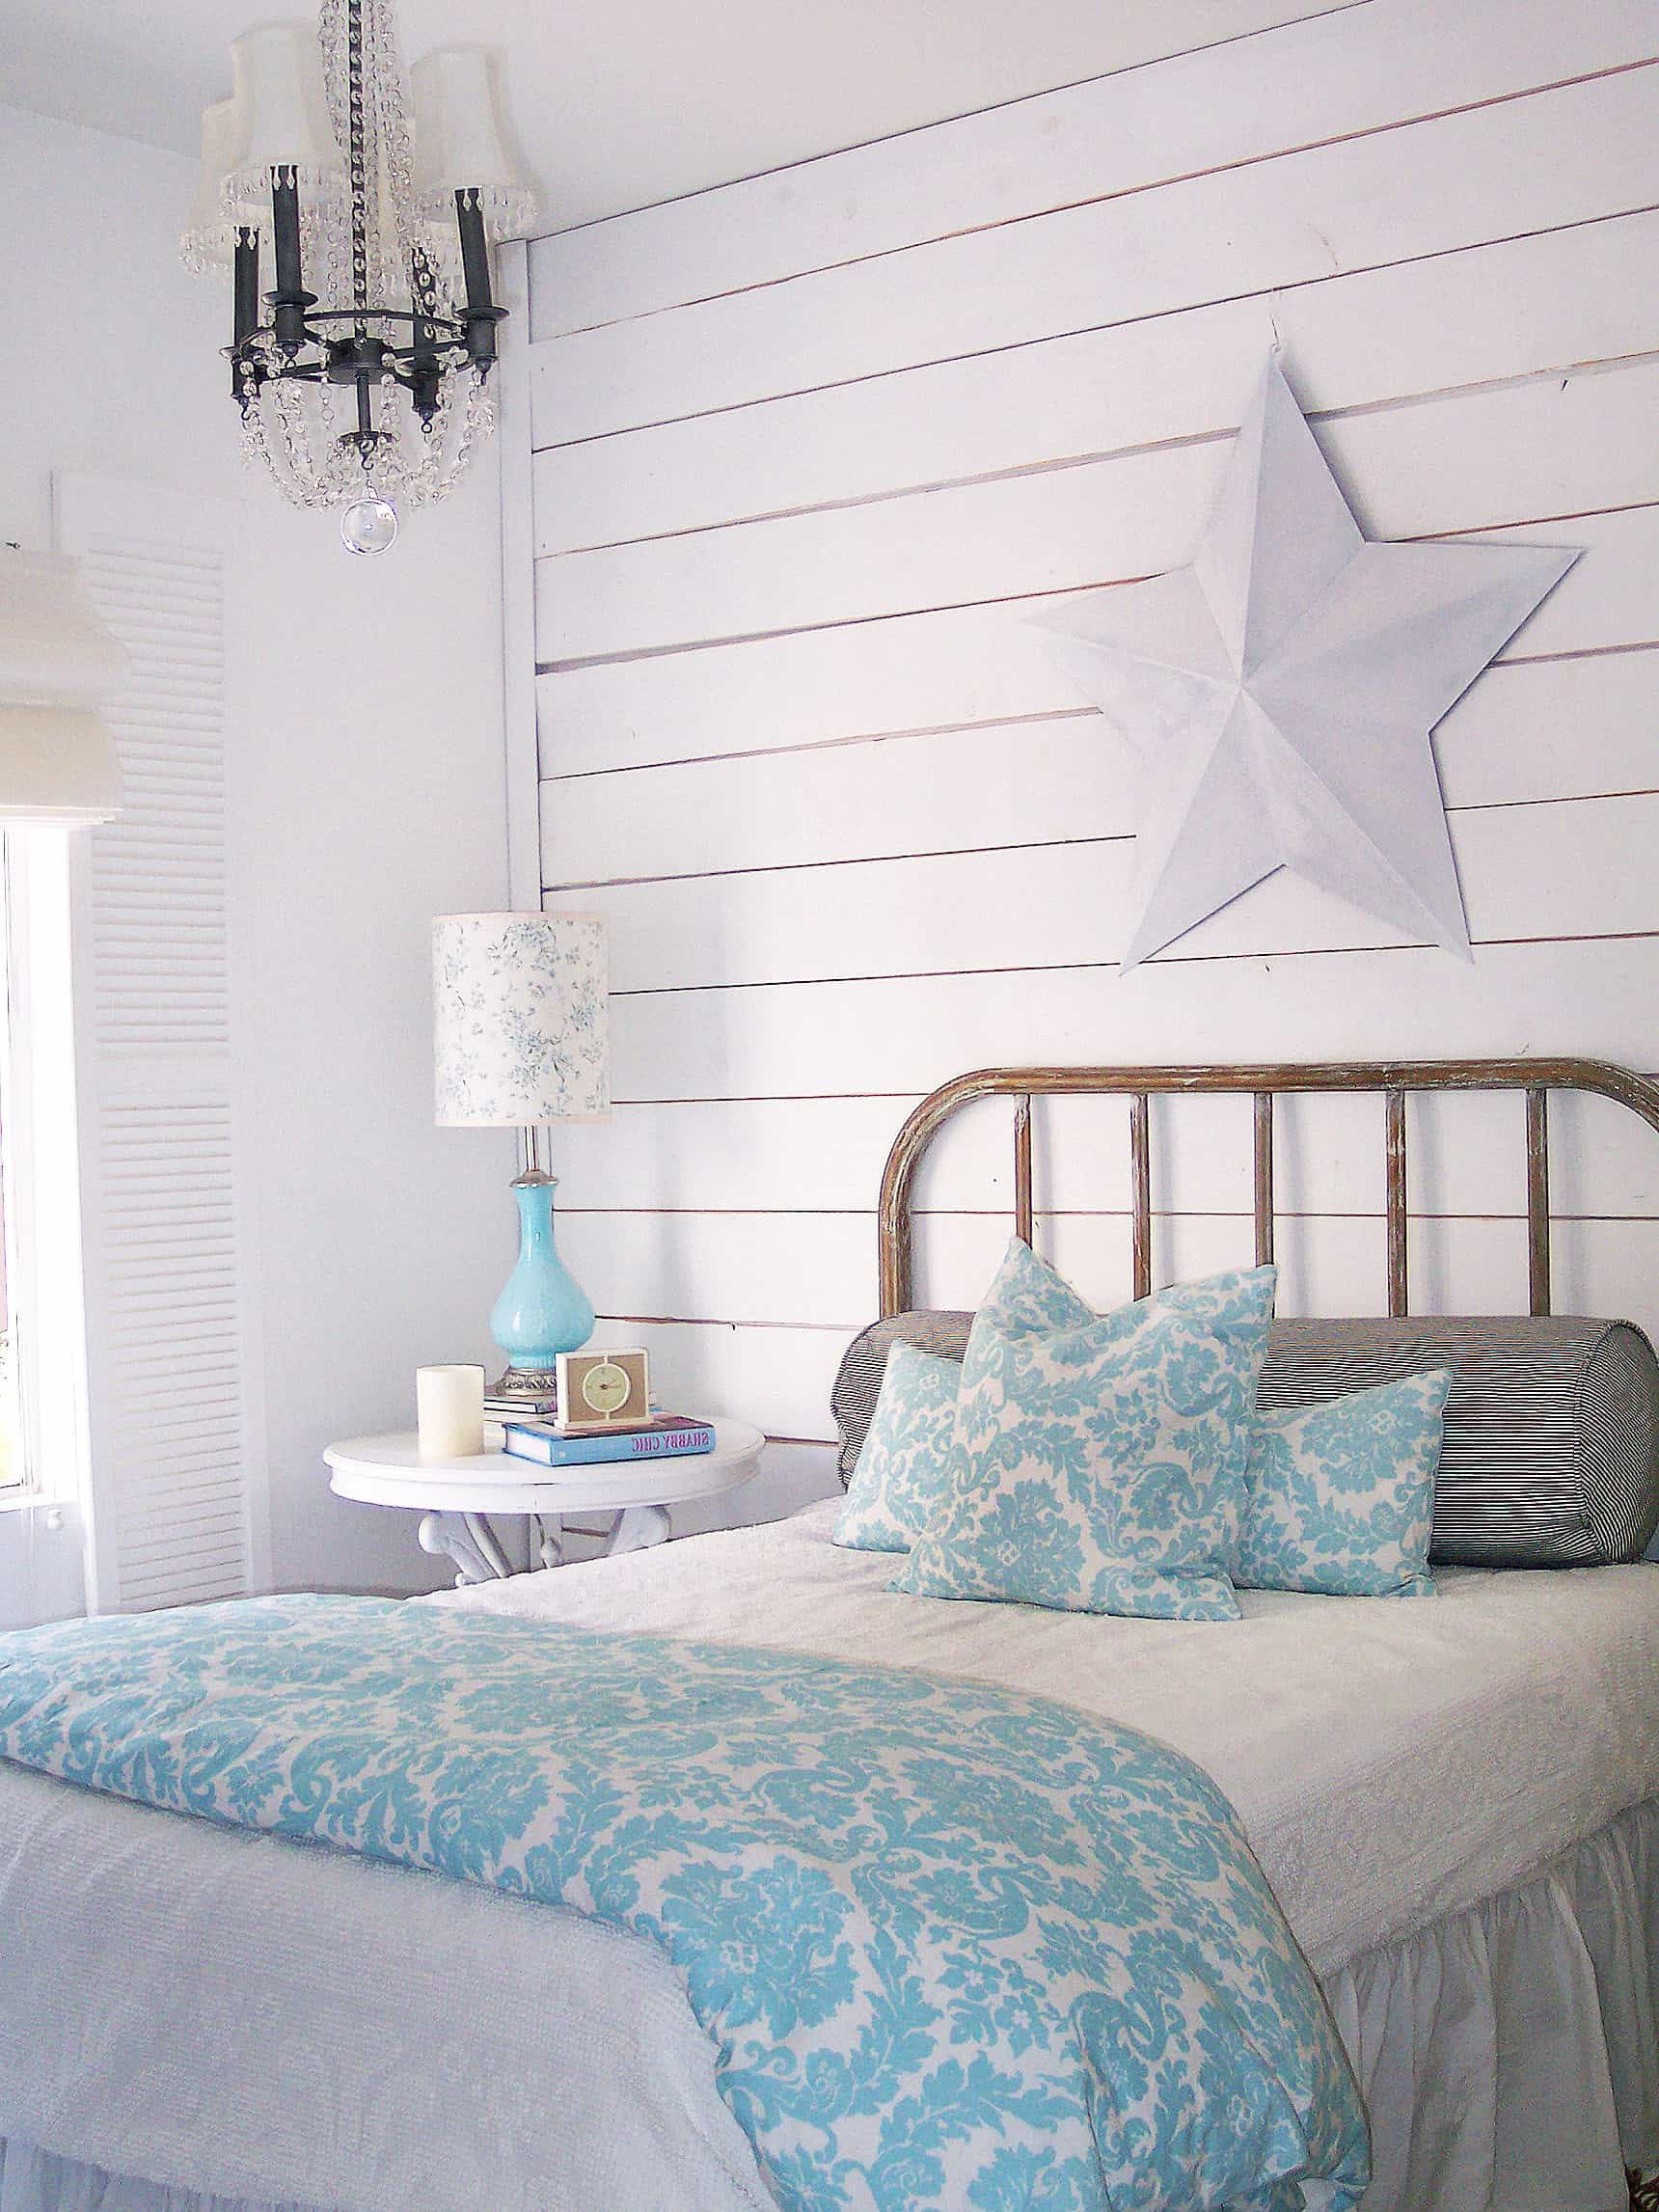 How To Decorate A Shabby Chic Bedroom #22944 | Bedroom Ideas